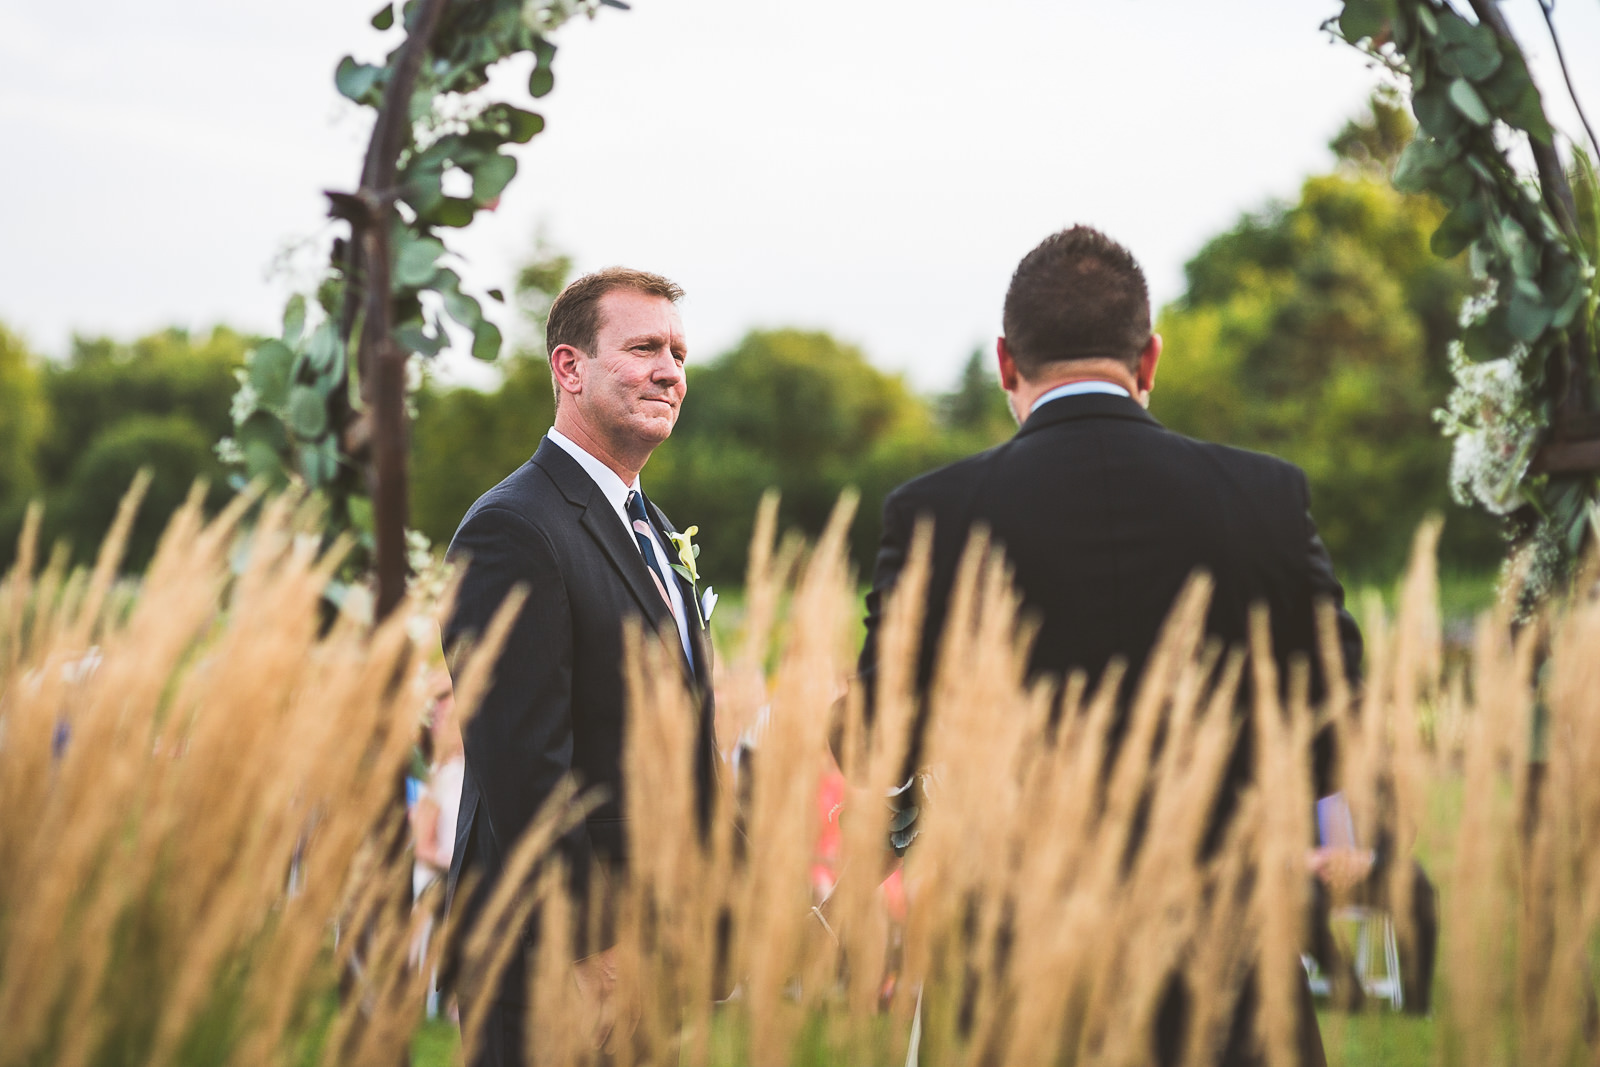 29 scotty - Karen + Scott // Fishermens Inn Wedding Photographer Elburn Illinois